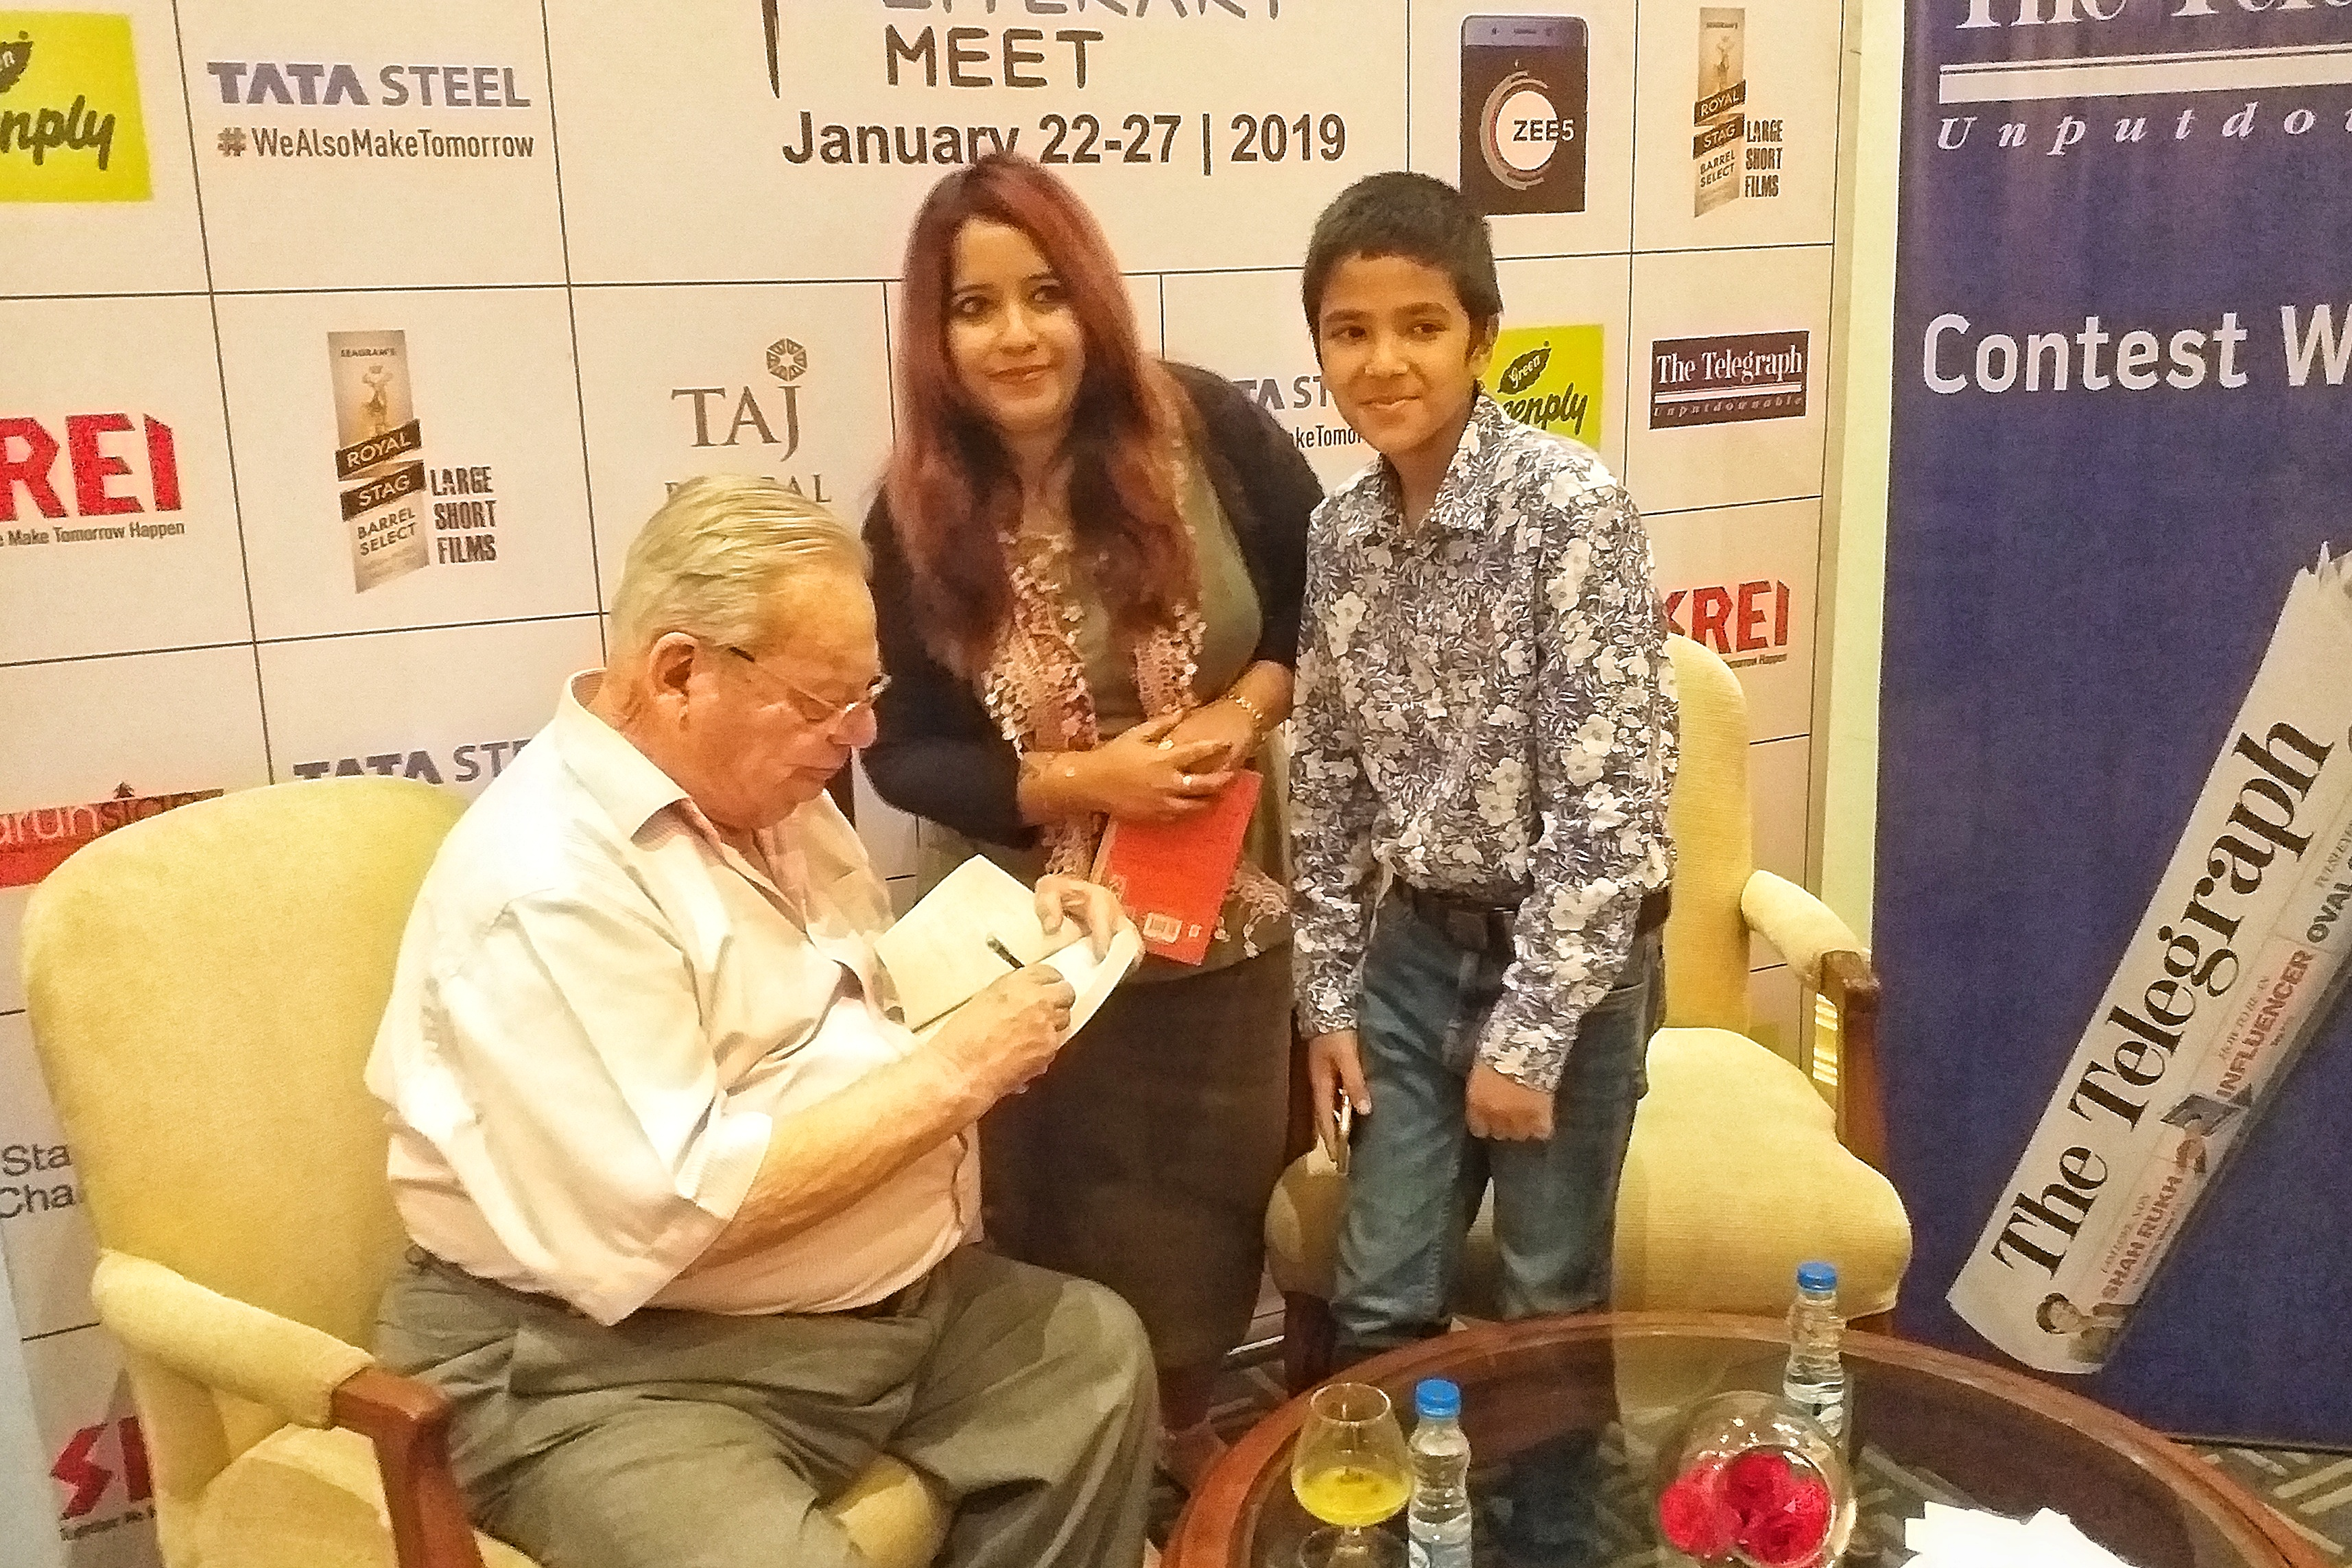 Caption: Ruskin Bond signing a book for a fan, Credit: Sandip Roy